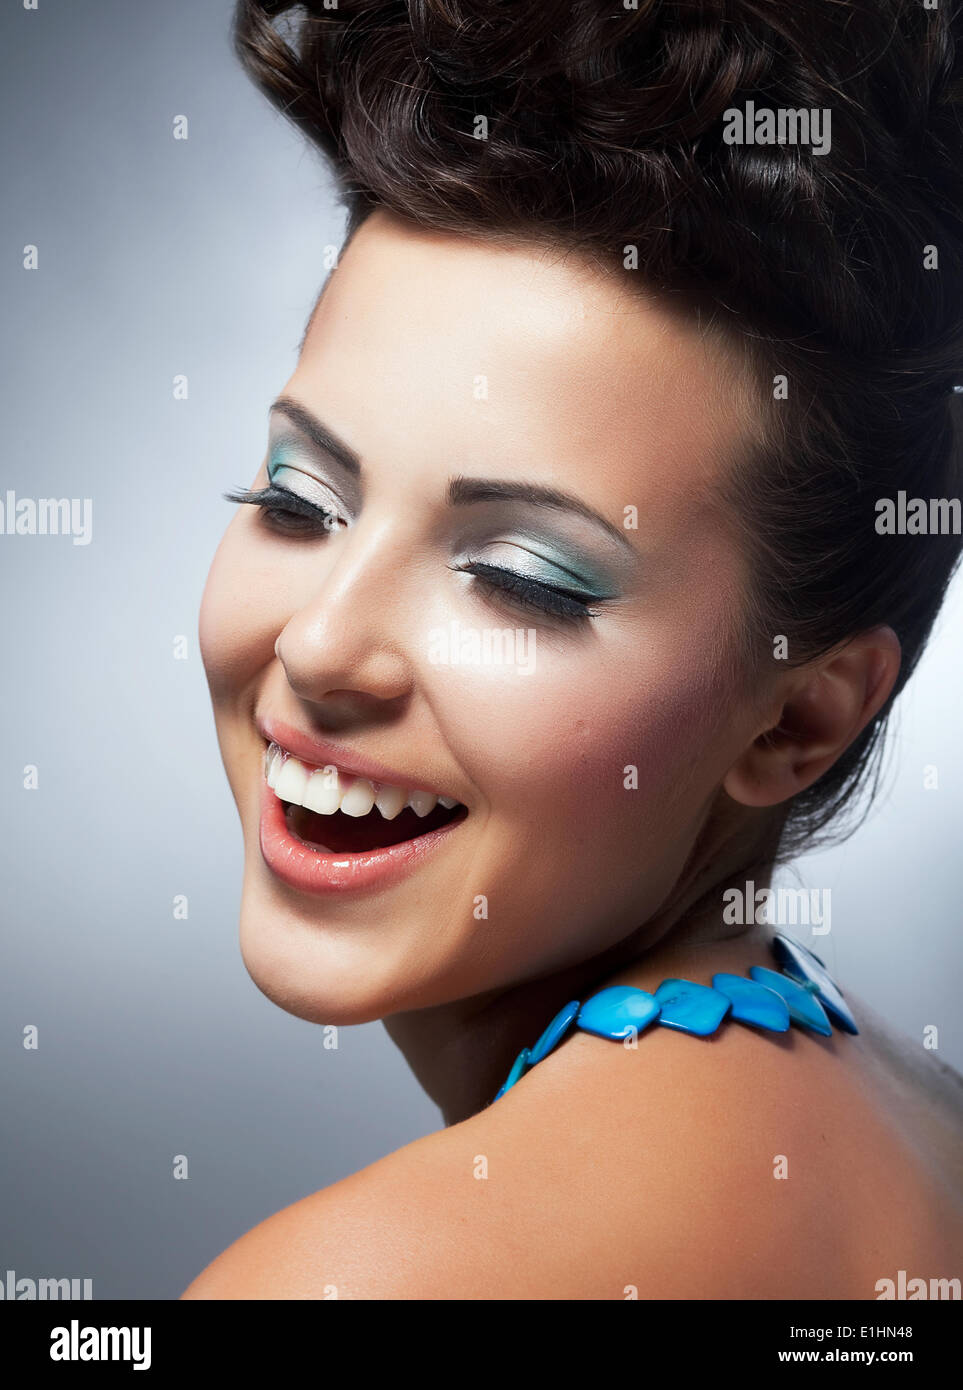 Bliss. Enjoyment. Cheerful Woman's Face with Happy Smile. Happiness & Felicity - Stock Image